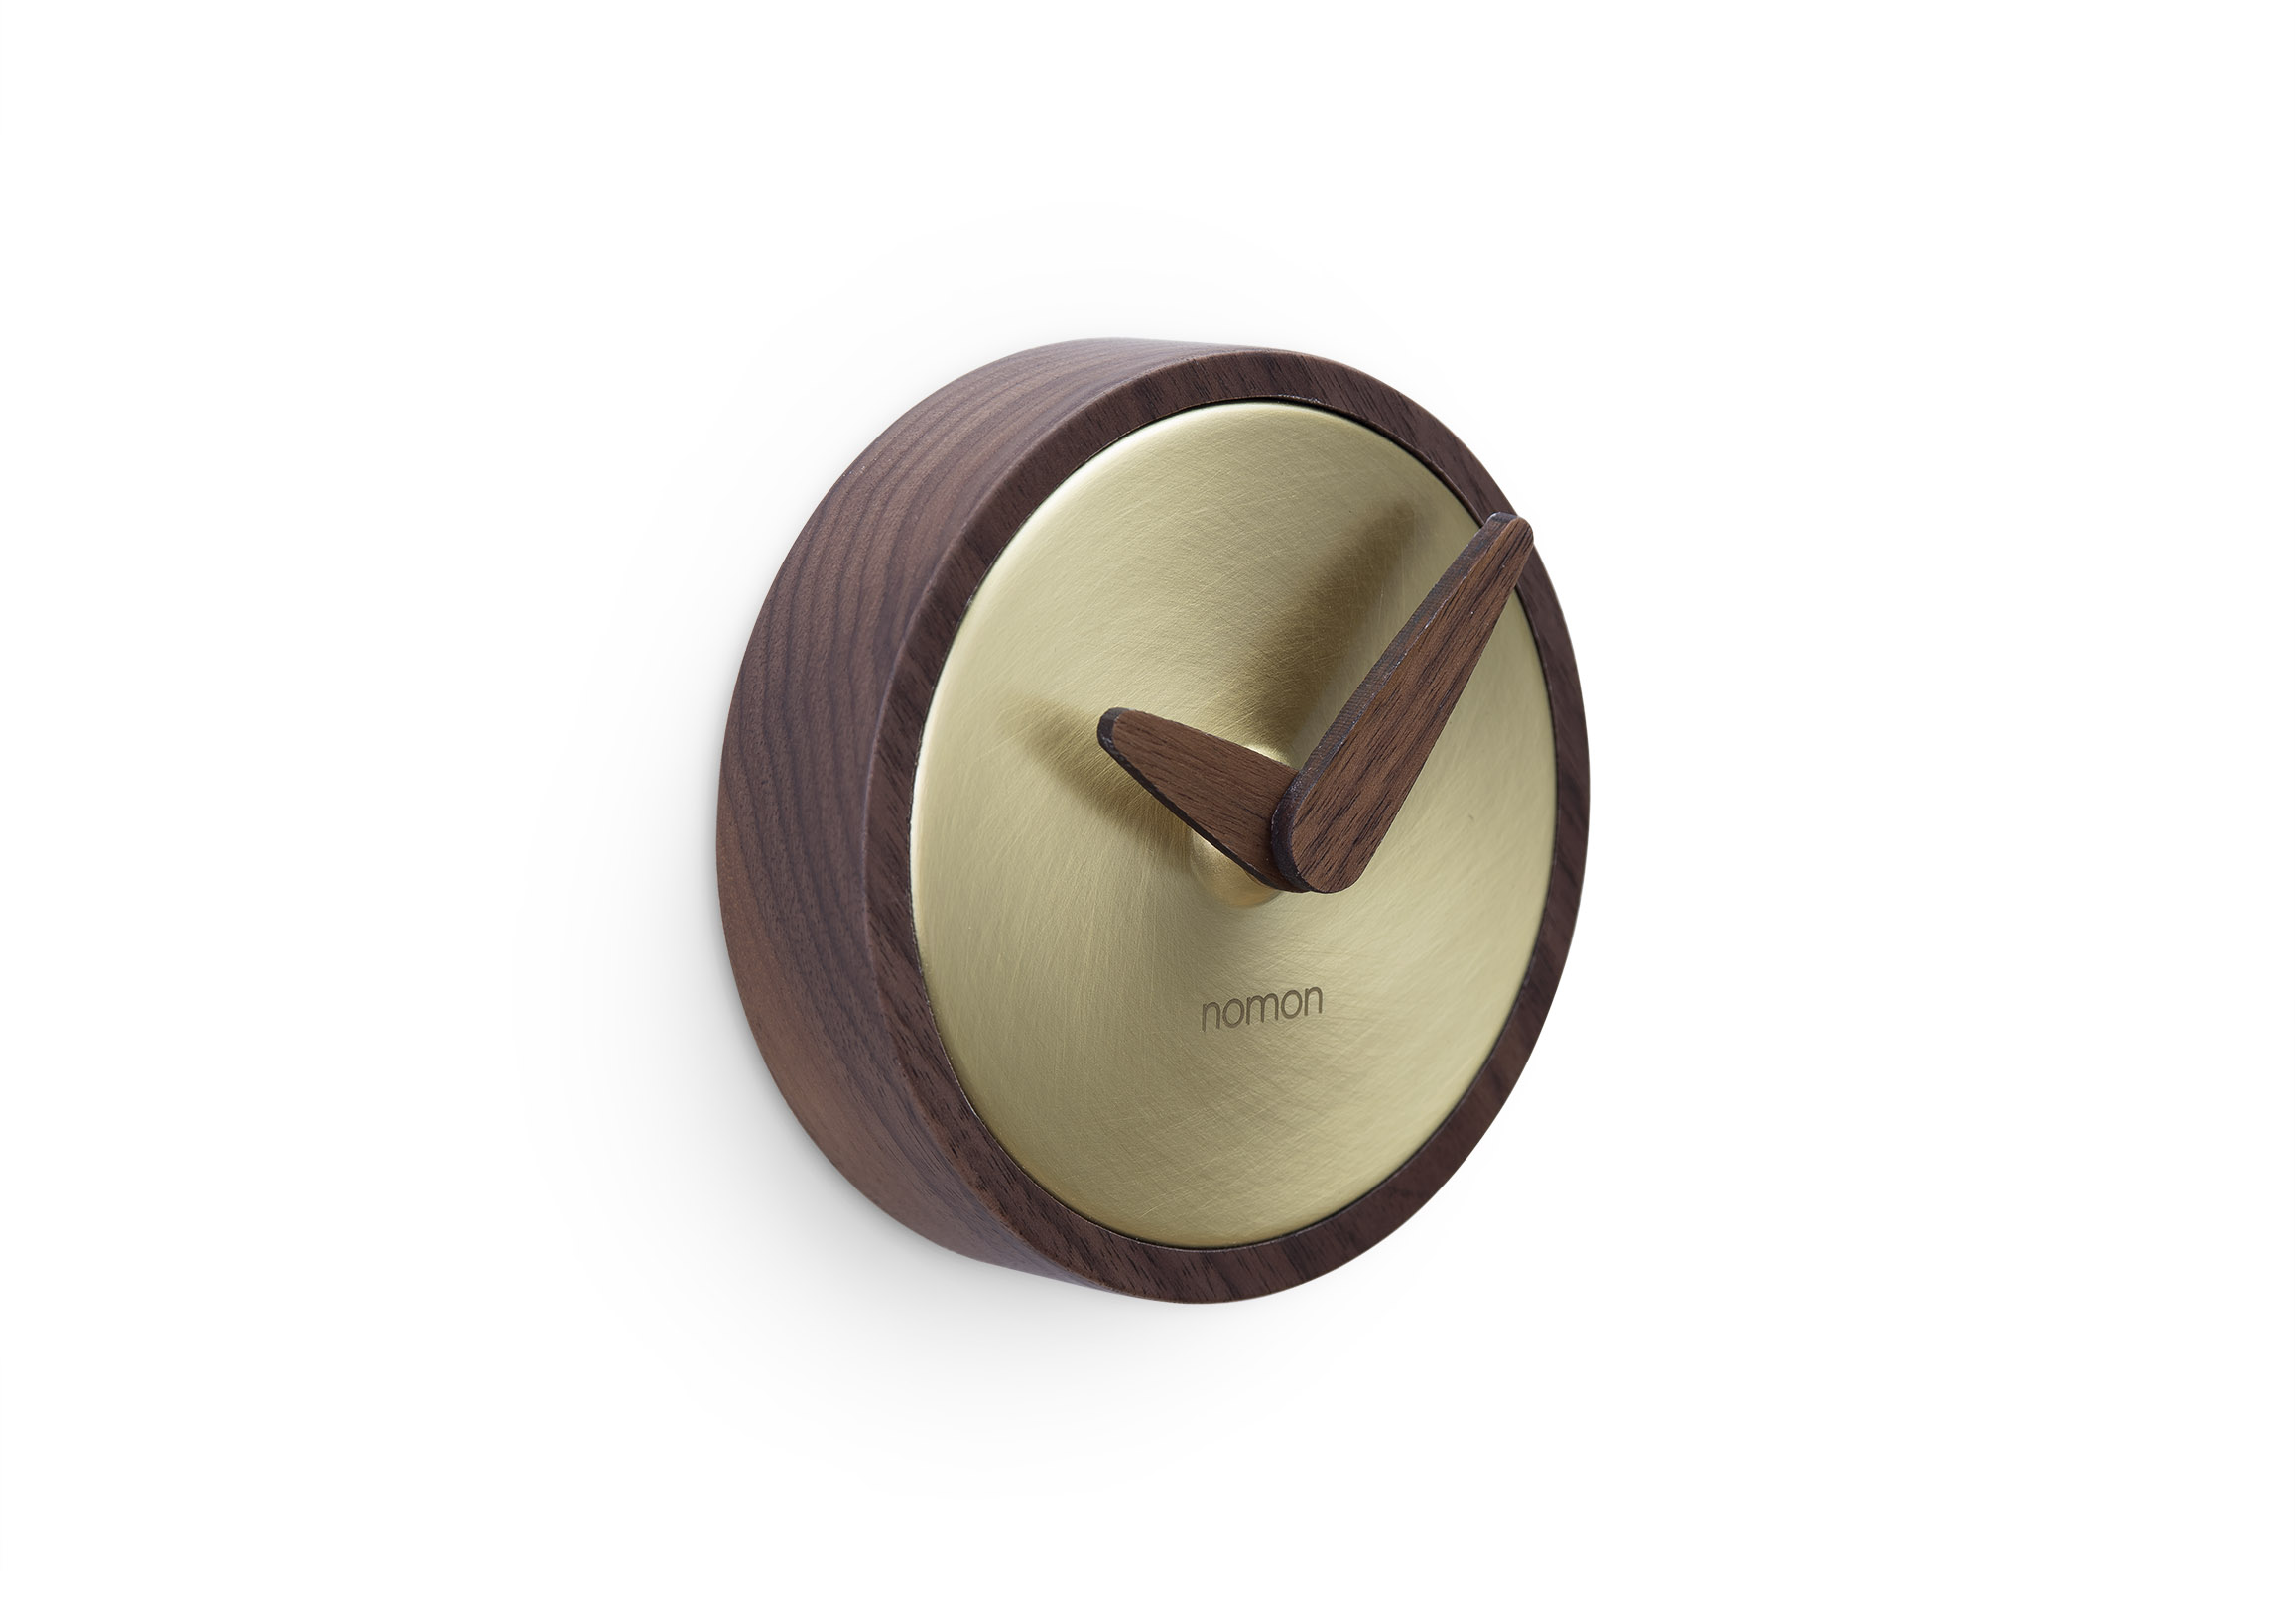 Atomo Wall Clock Nomon Golden Brass